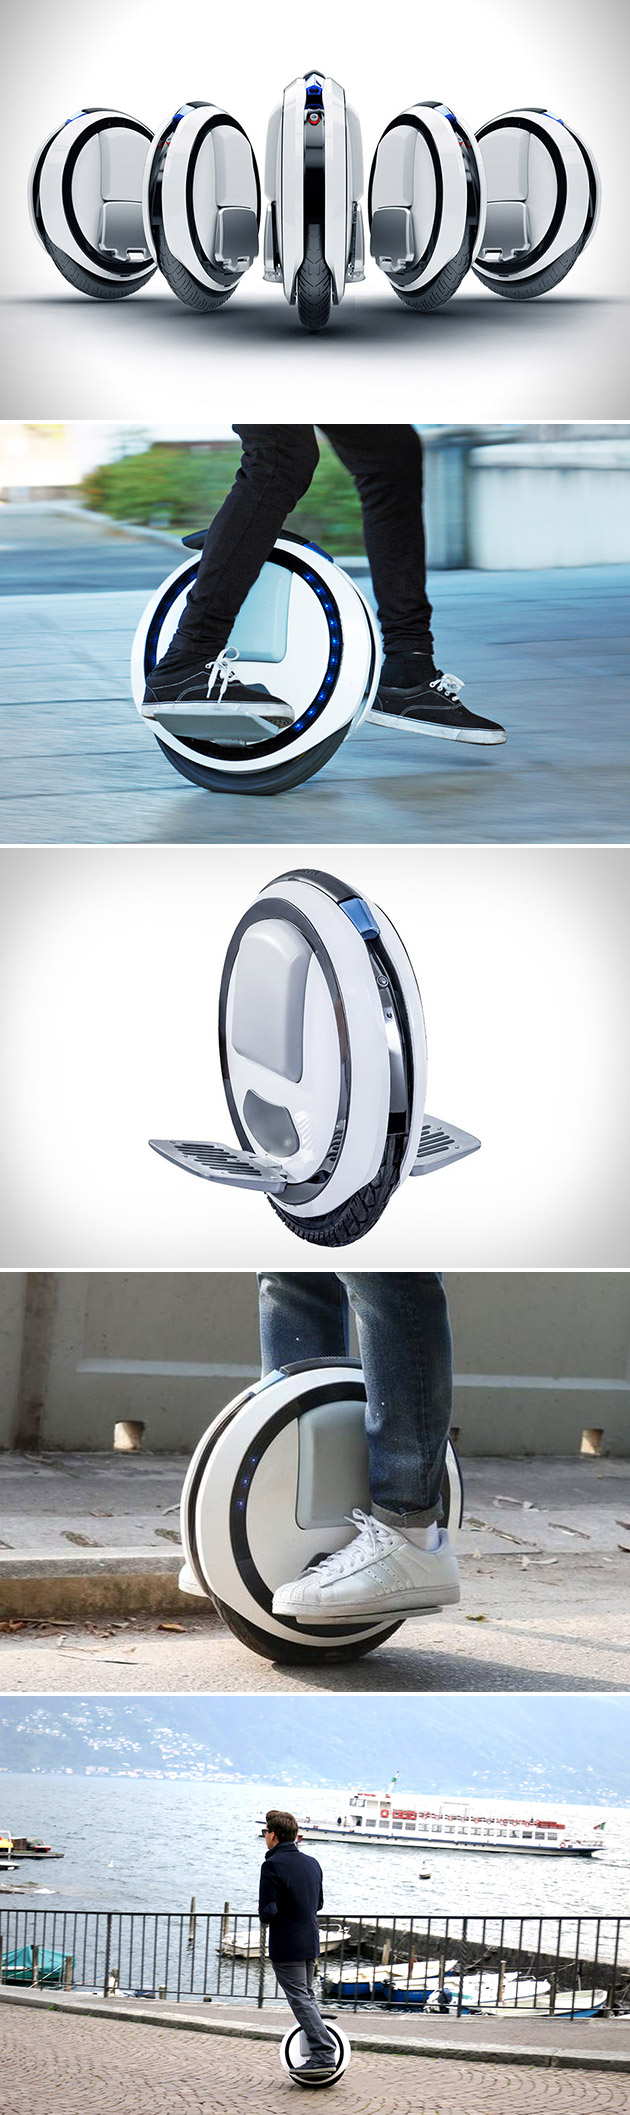 Ninebot Electric Self-Balancing Unicycle